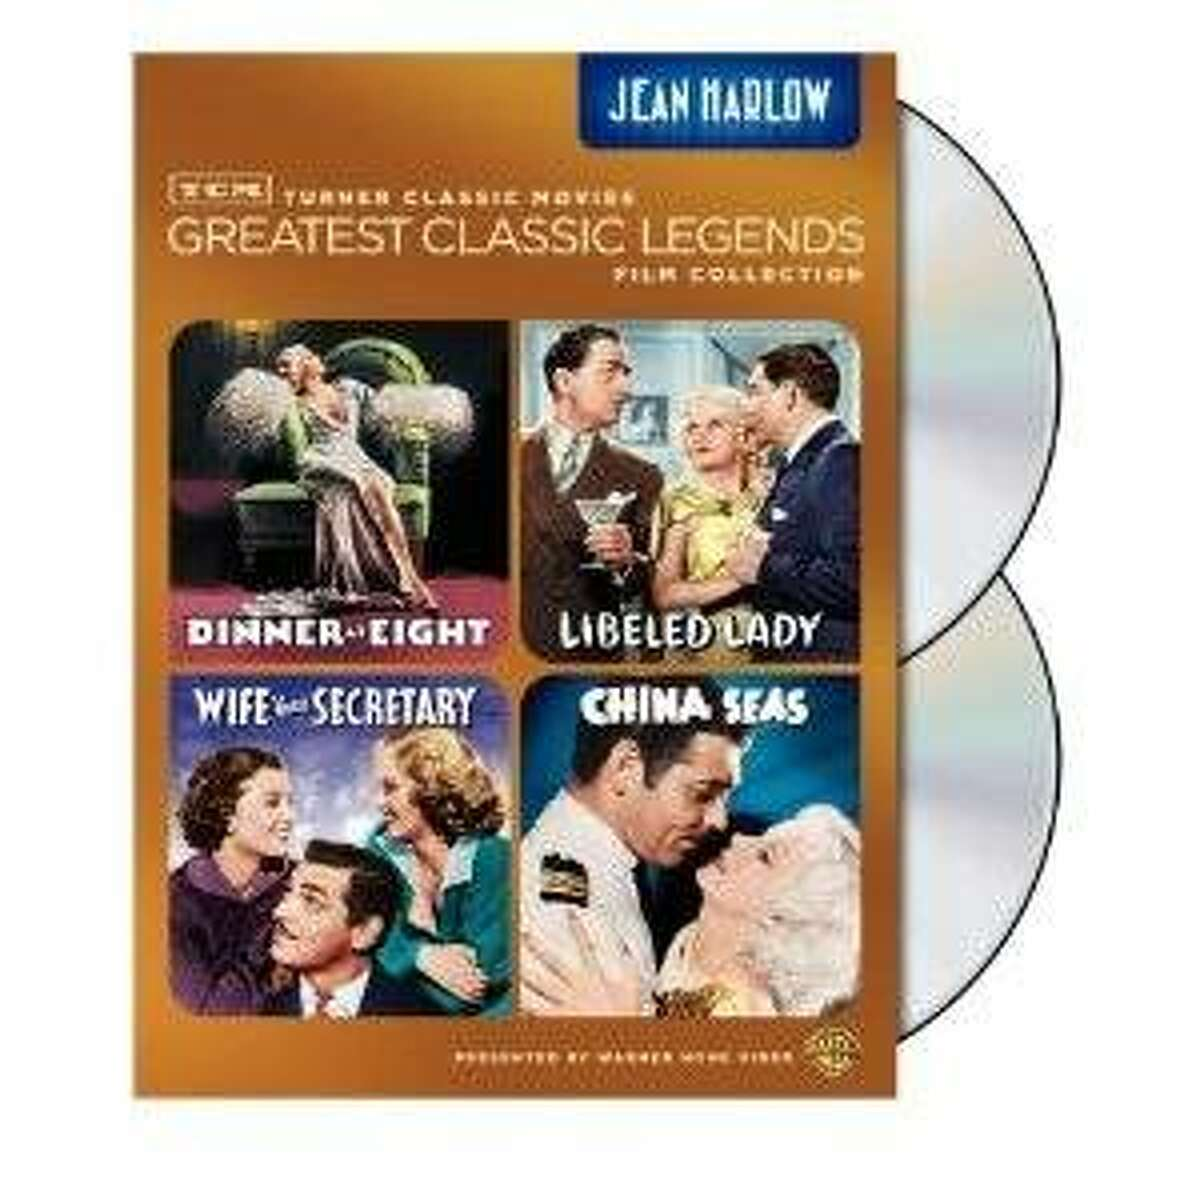 dvd cover: JEAN HARLOW: GREATEST CLASSIC LEGENDS FILM COLLECTION